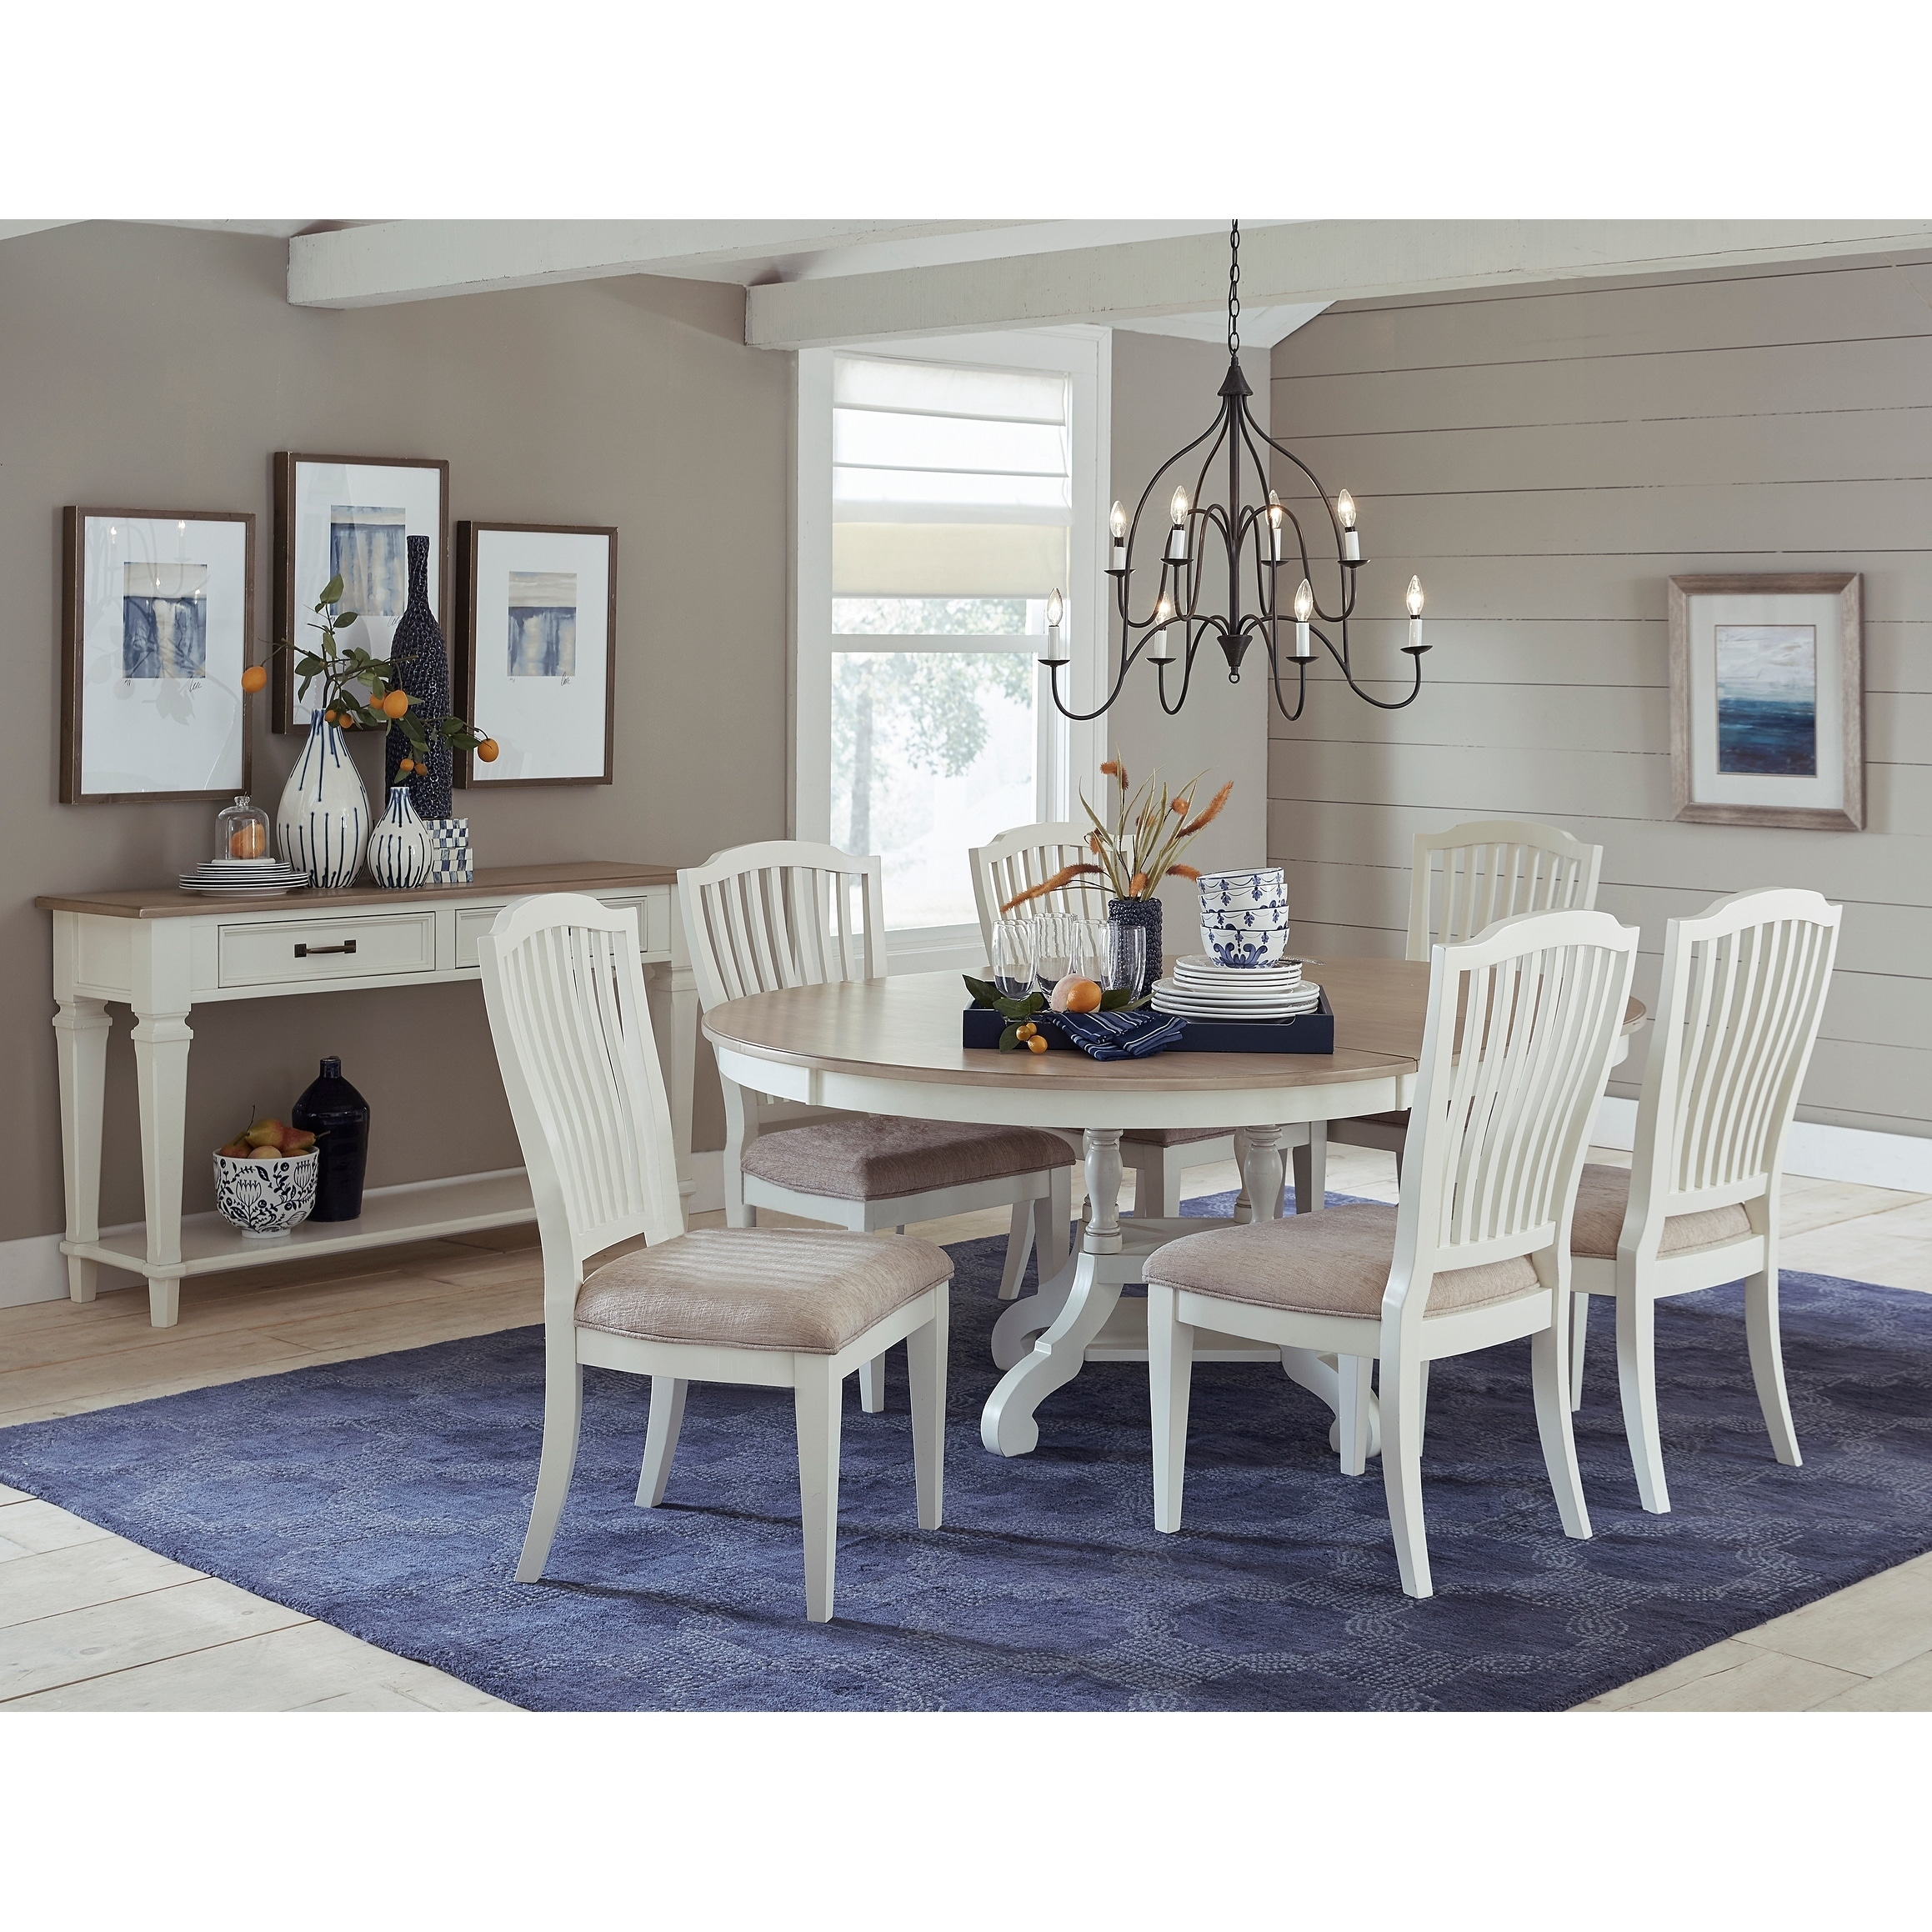 Hilale Rockport 7 Piece Round Oval Dining Table With Side Chairs